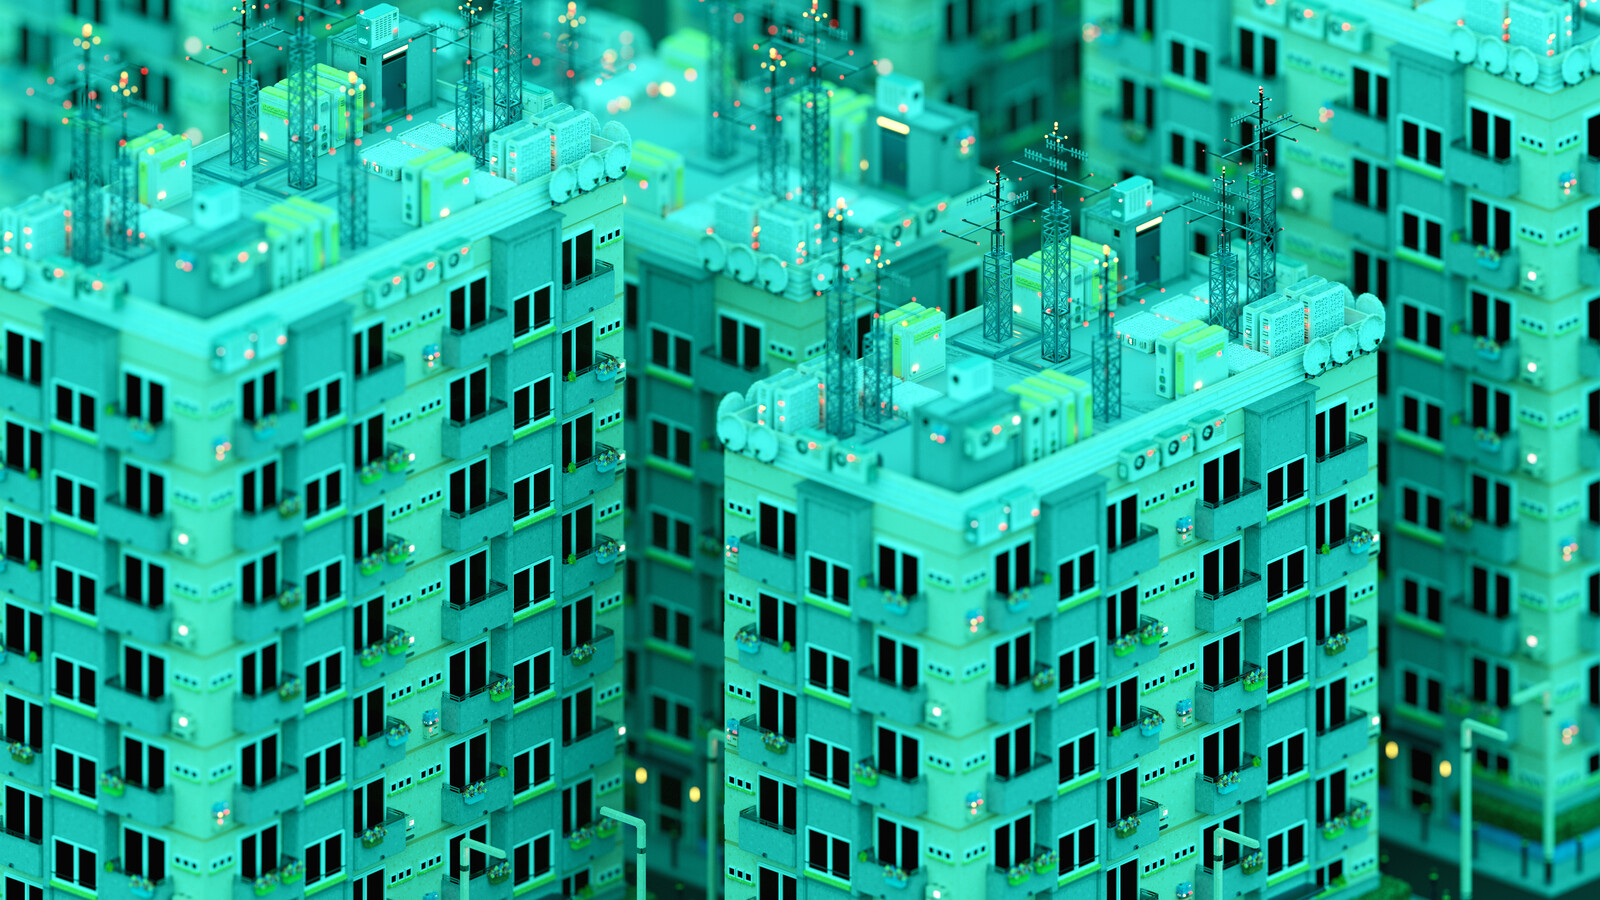 Voxel Game Project - Skyscraper n°2 - Day